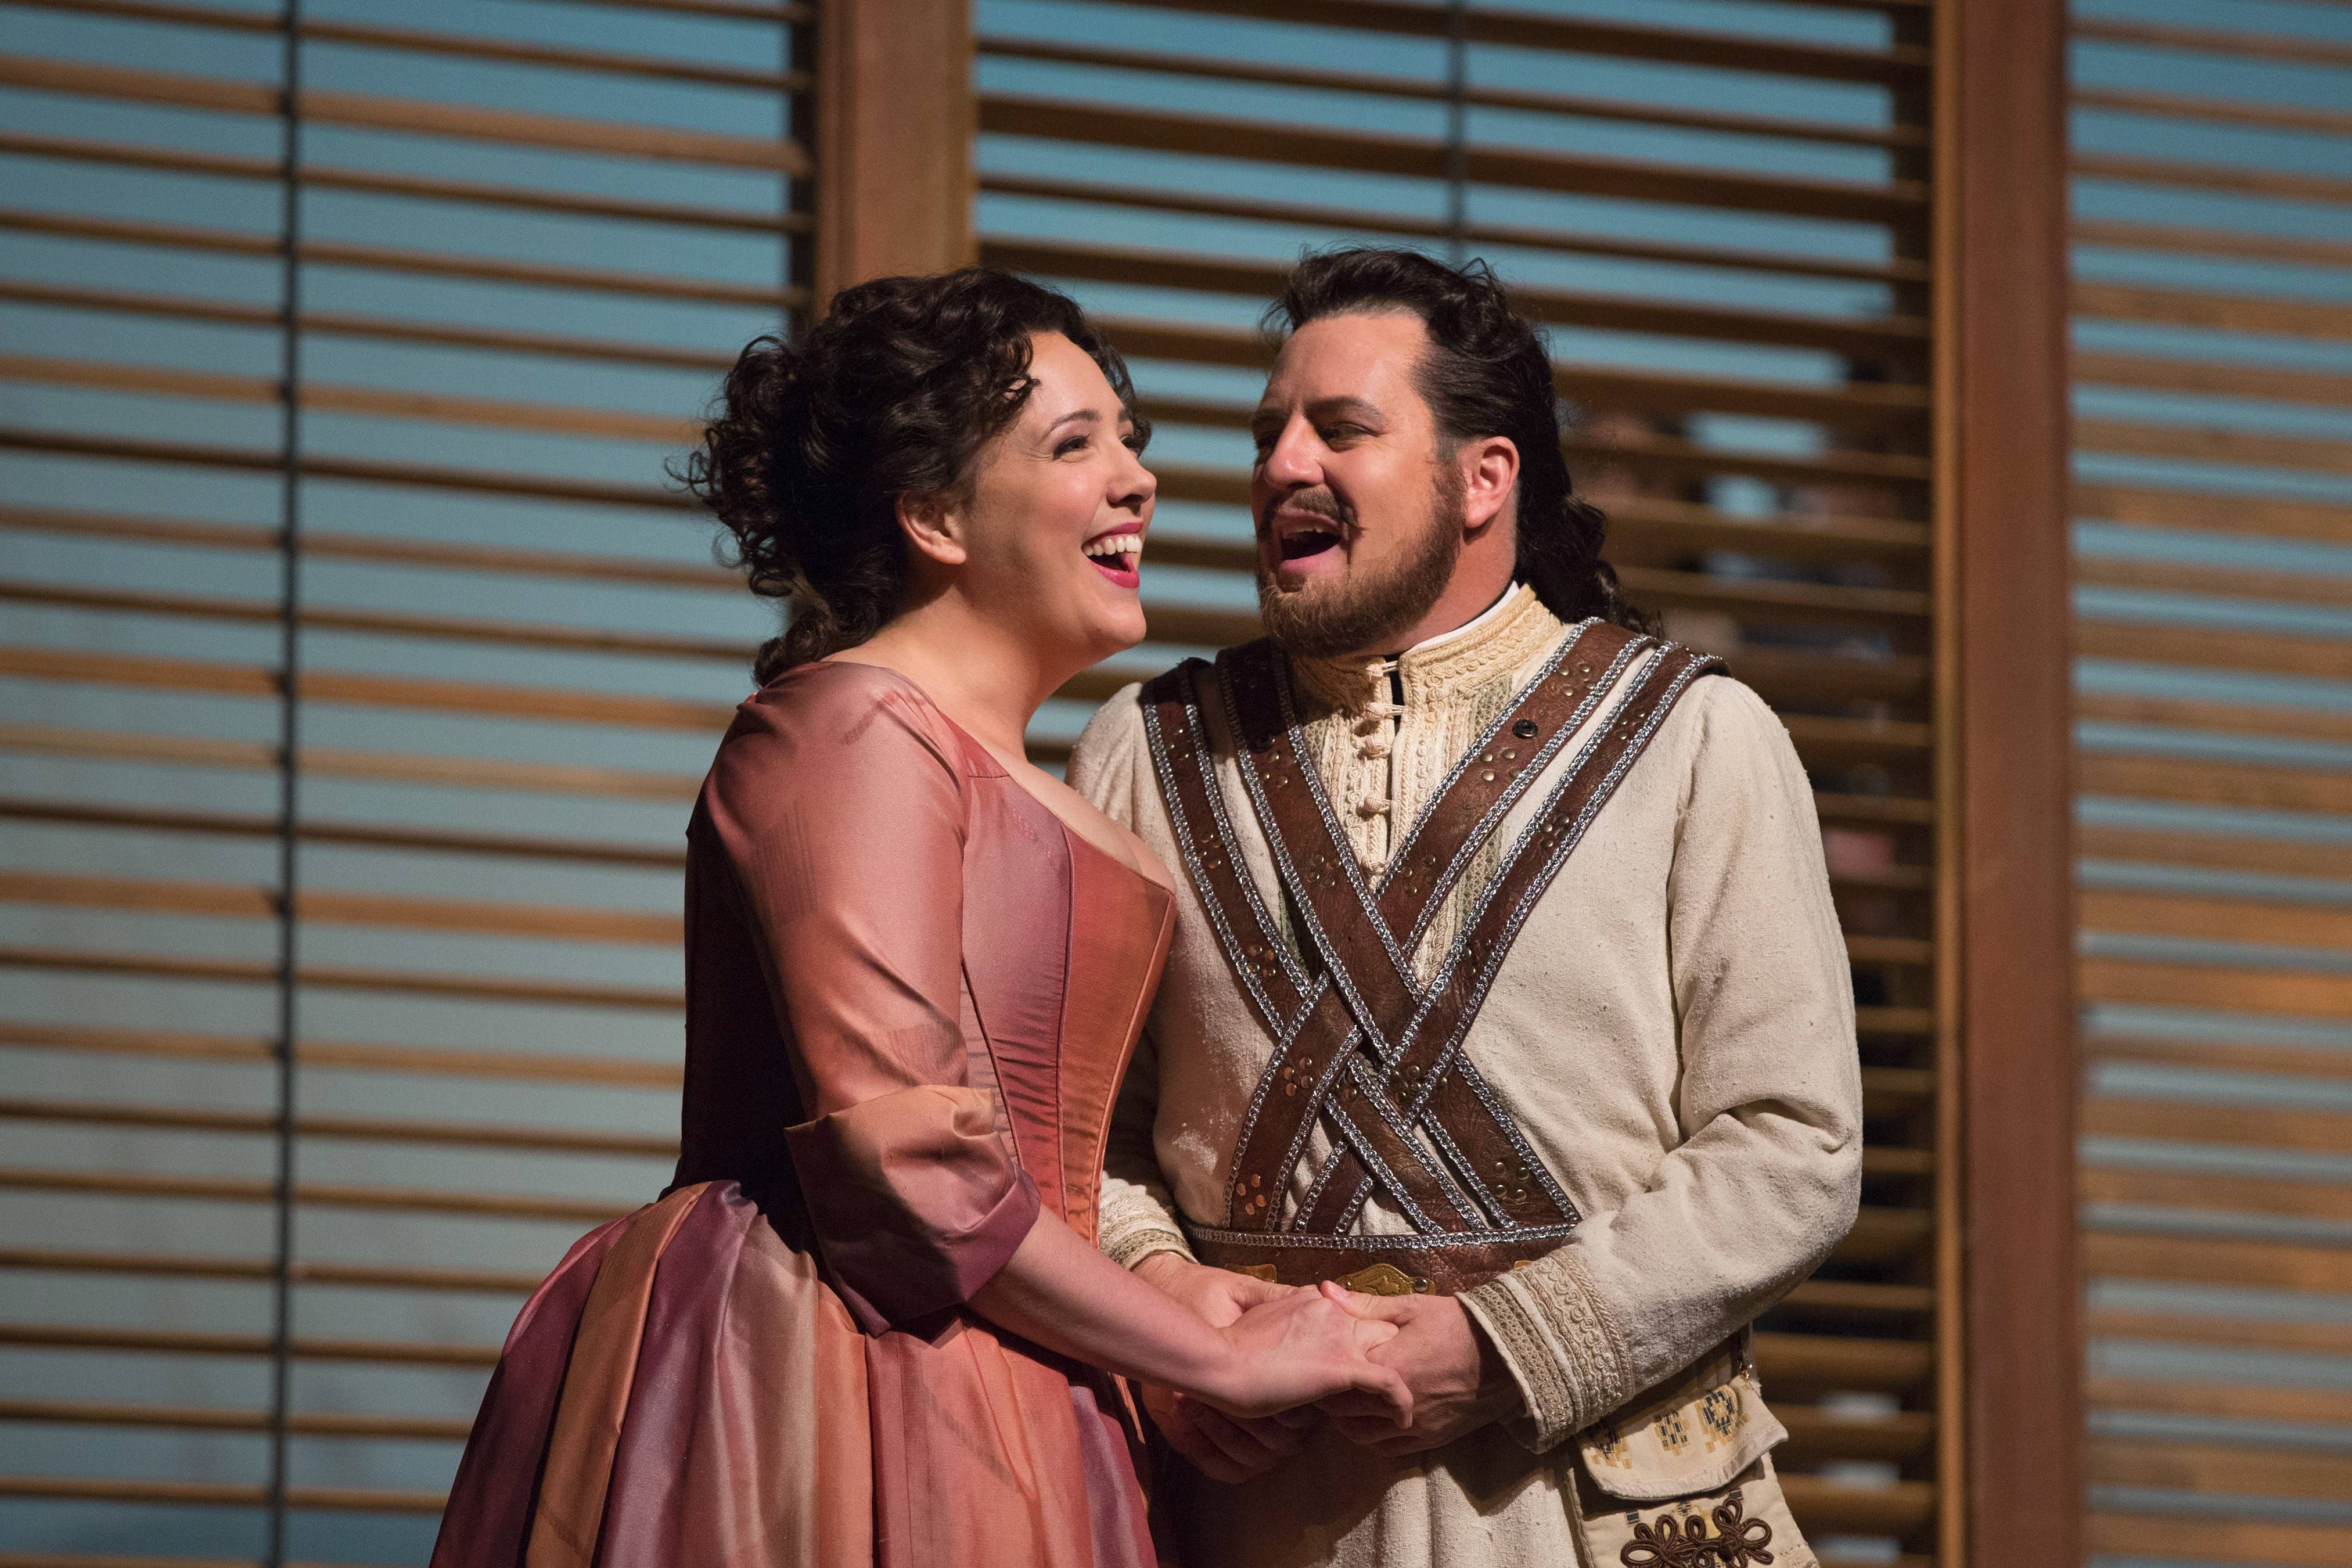 "Susanna Phillips and Wilmette native Mathew Polenzani co-star in a Metropolitan Opera Live in HD simulcast of Mozart's unsettling comedy ""Così fan tutte."""